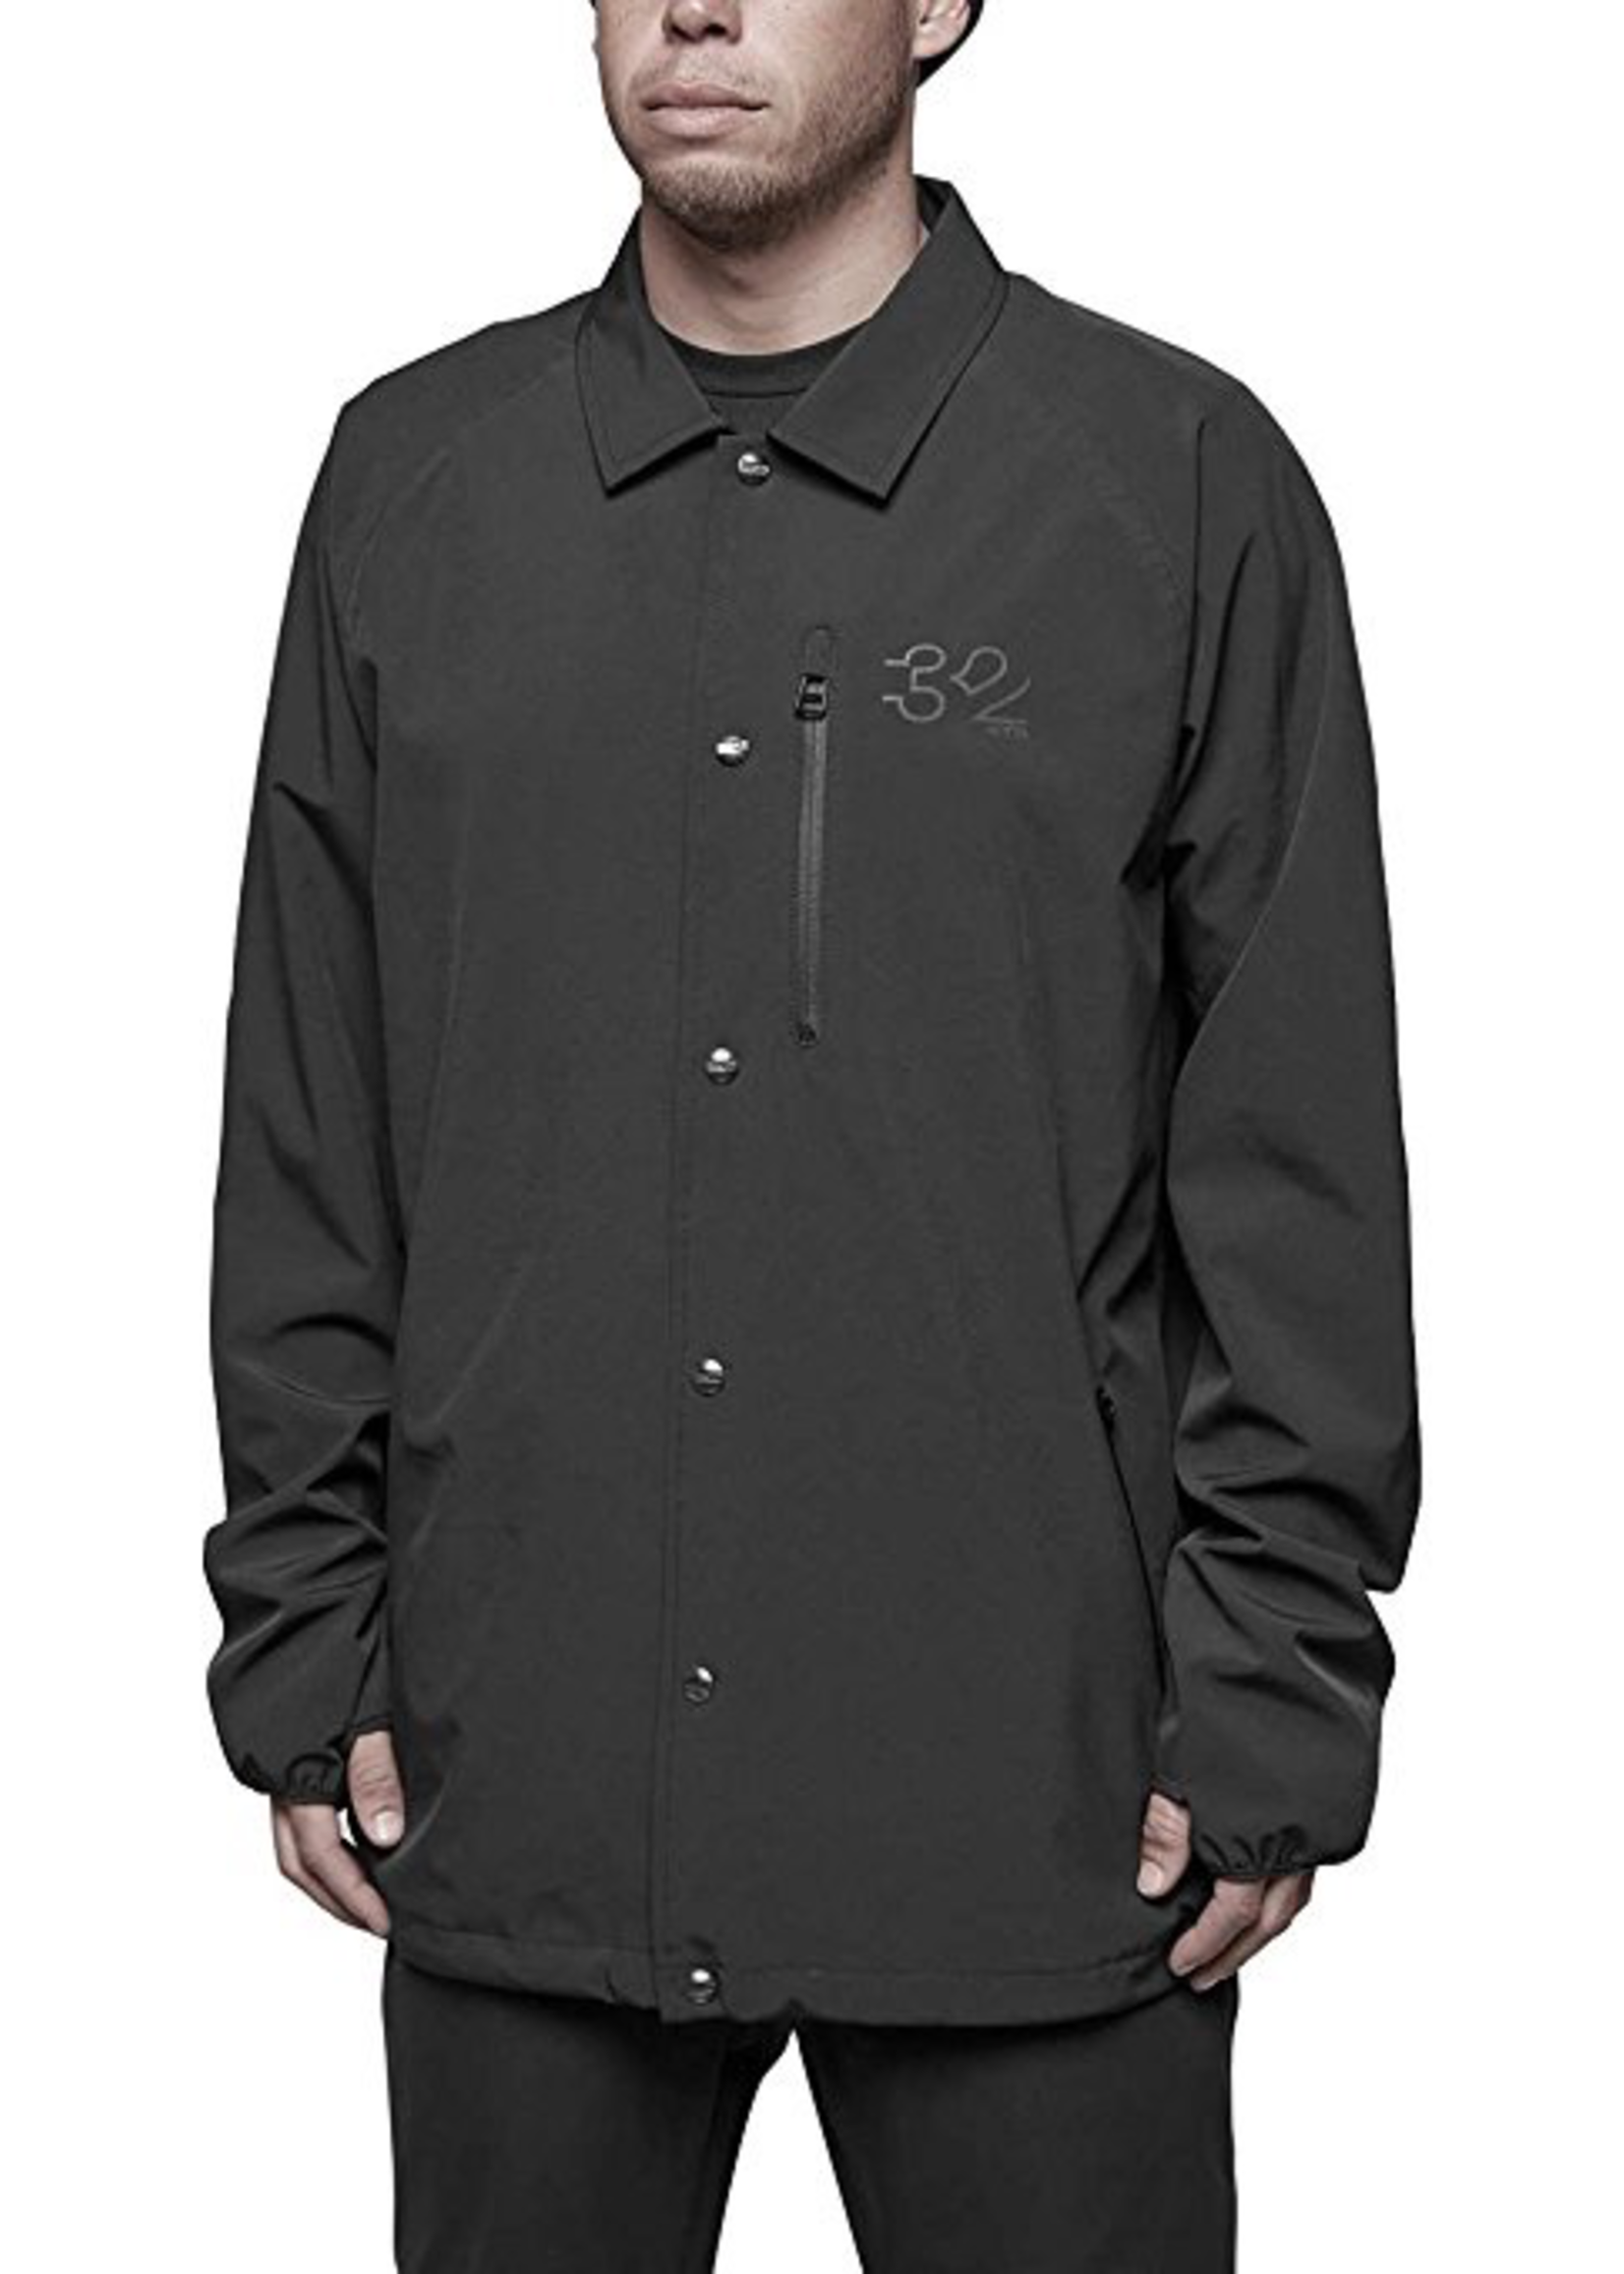 Thirty-two 32 4TS WIRE JACKET BLACK SMALL